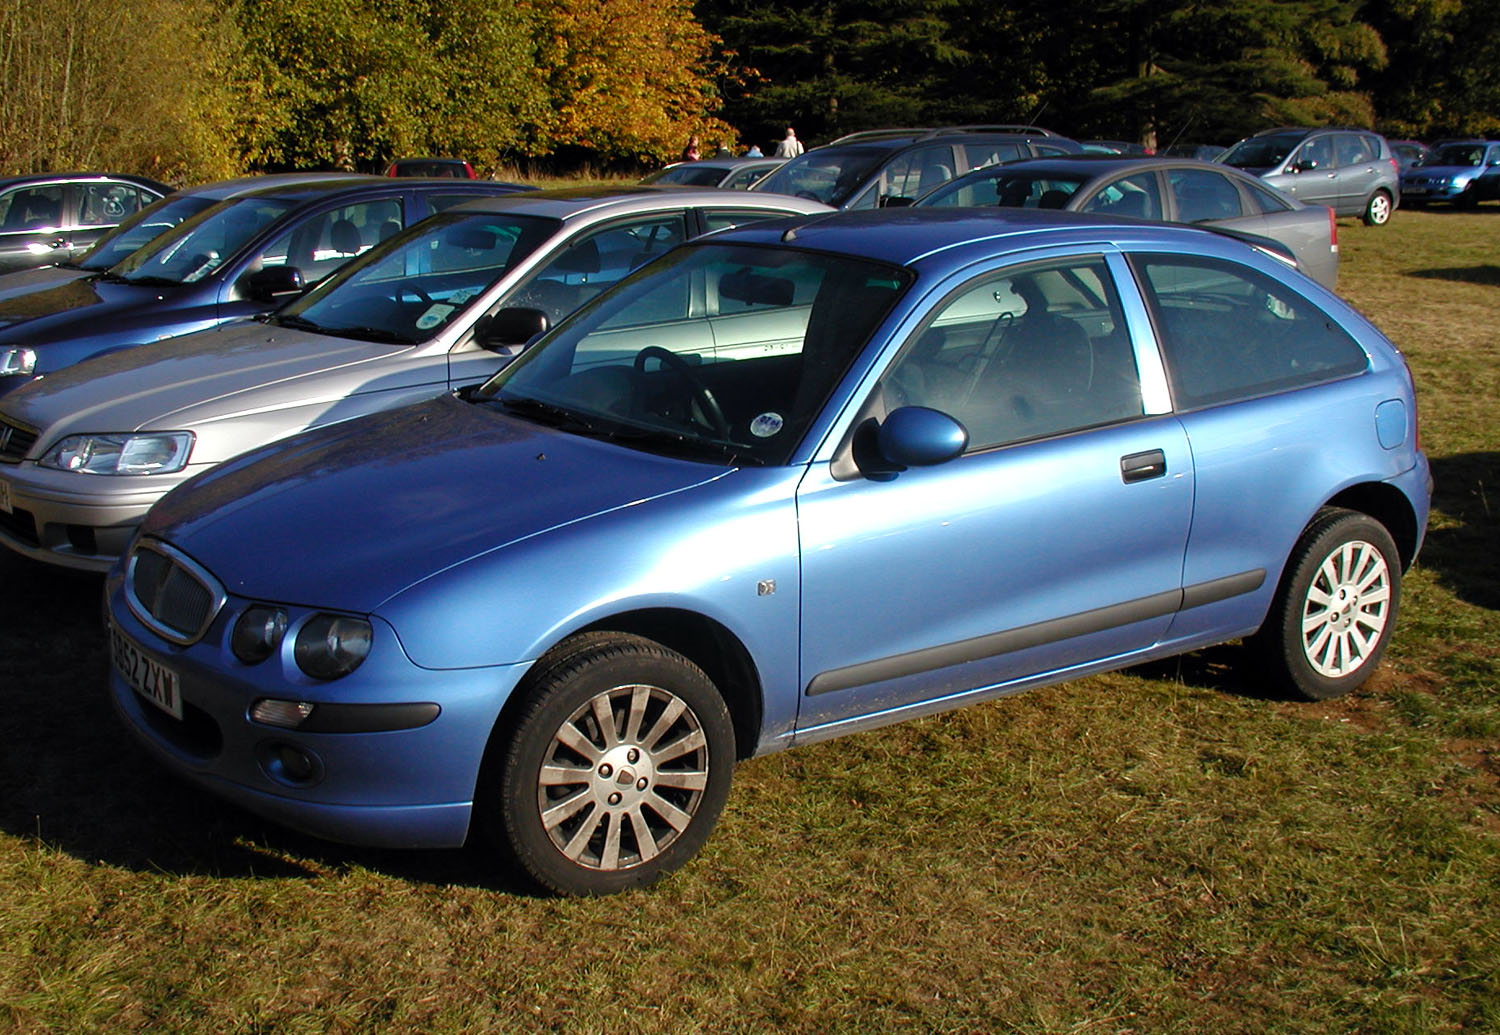 2001 MG Rover #12